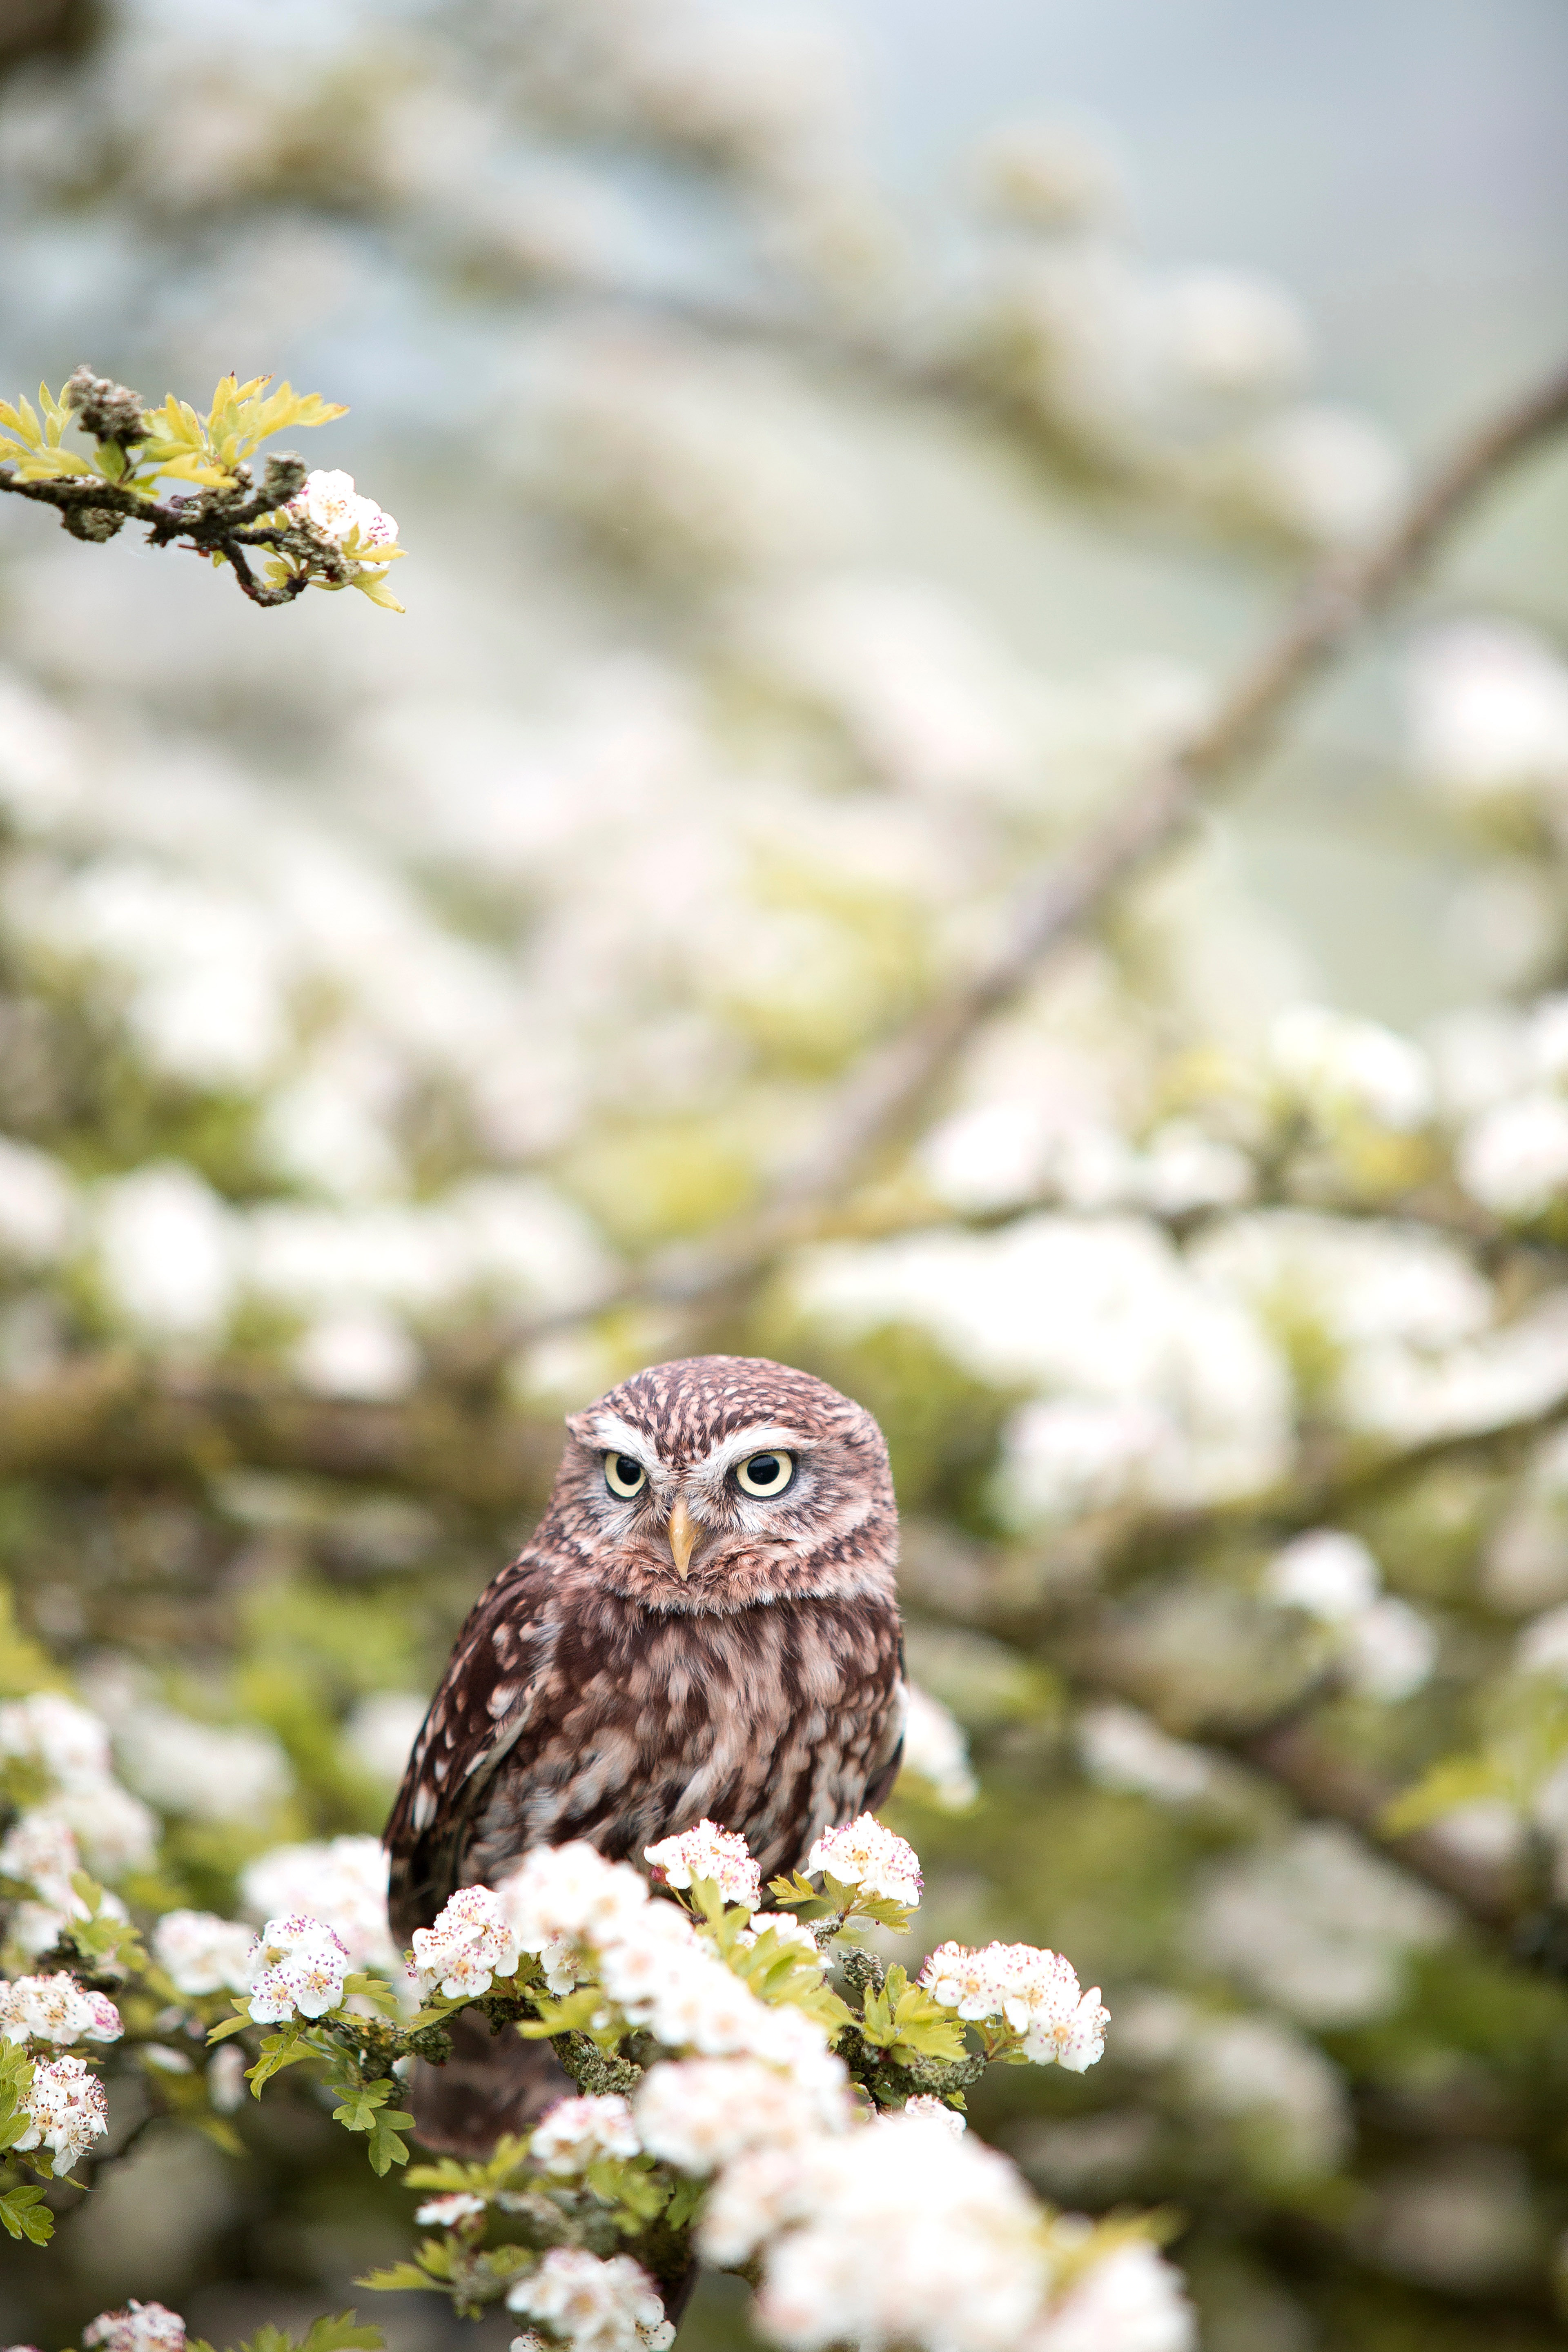 Small Owl In The White Flower Trees Image Free Stock Photo